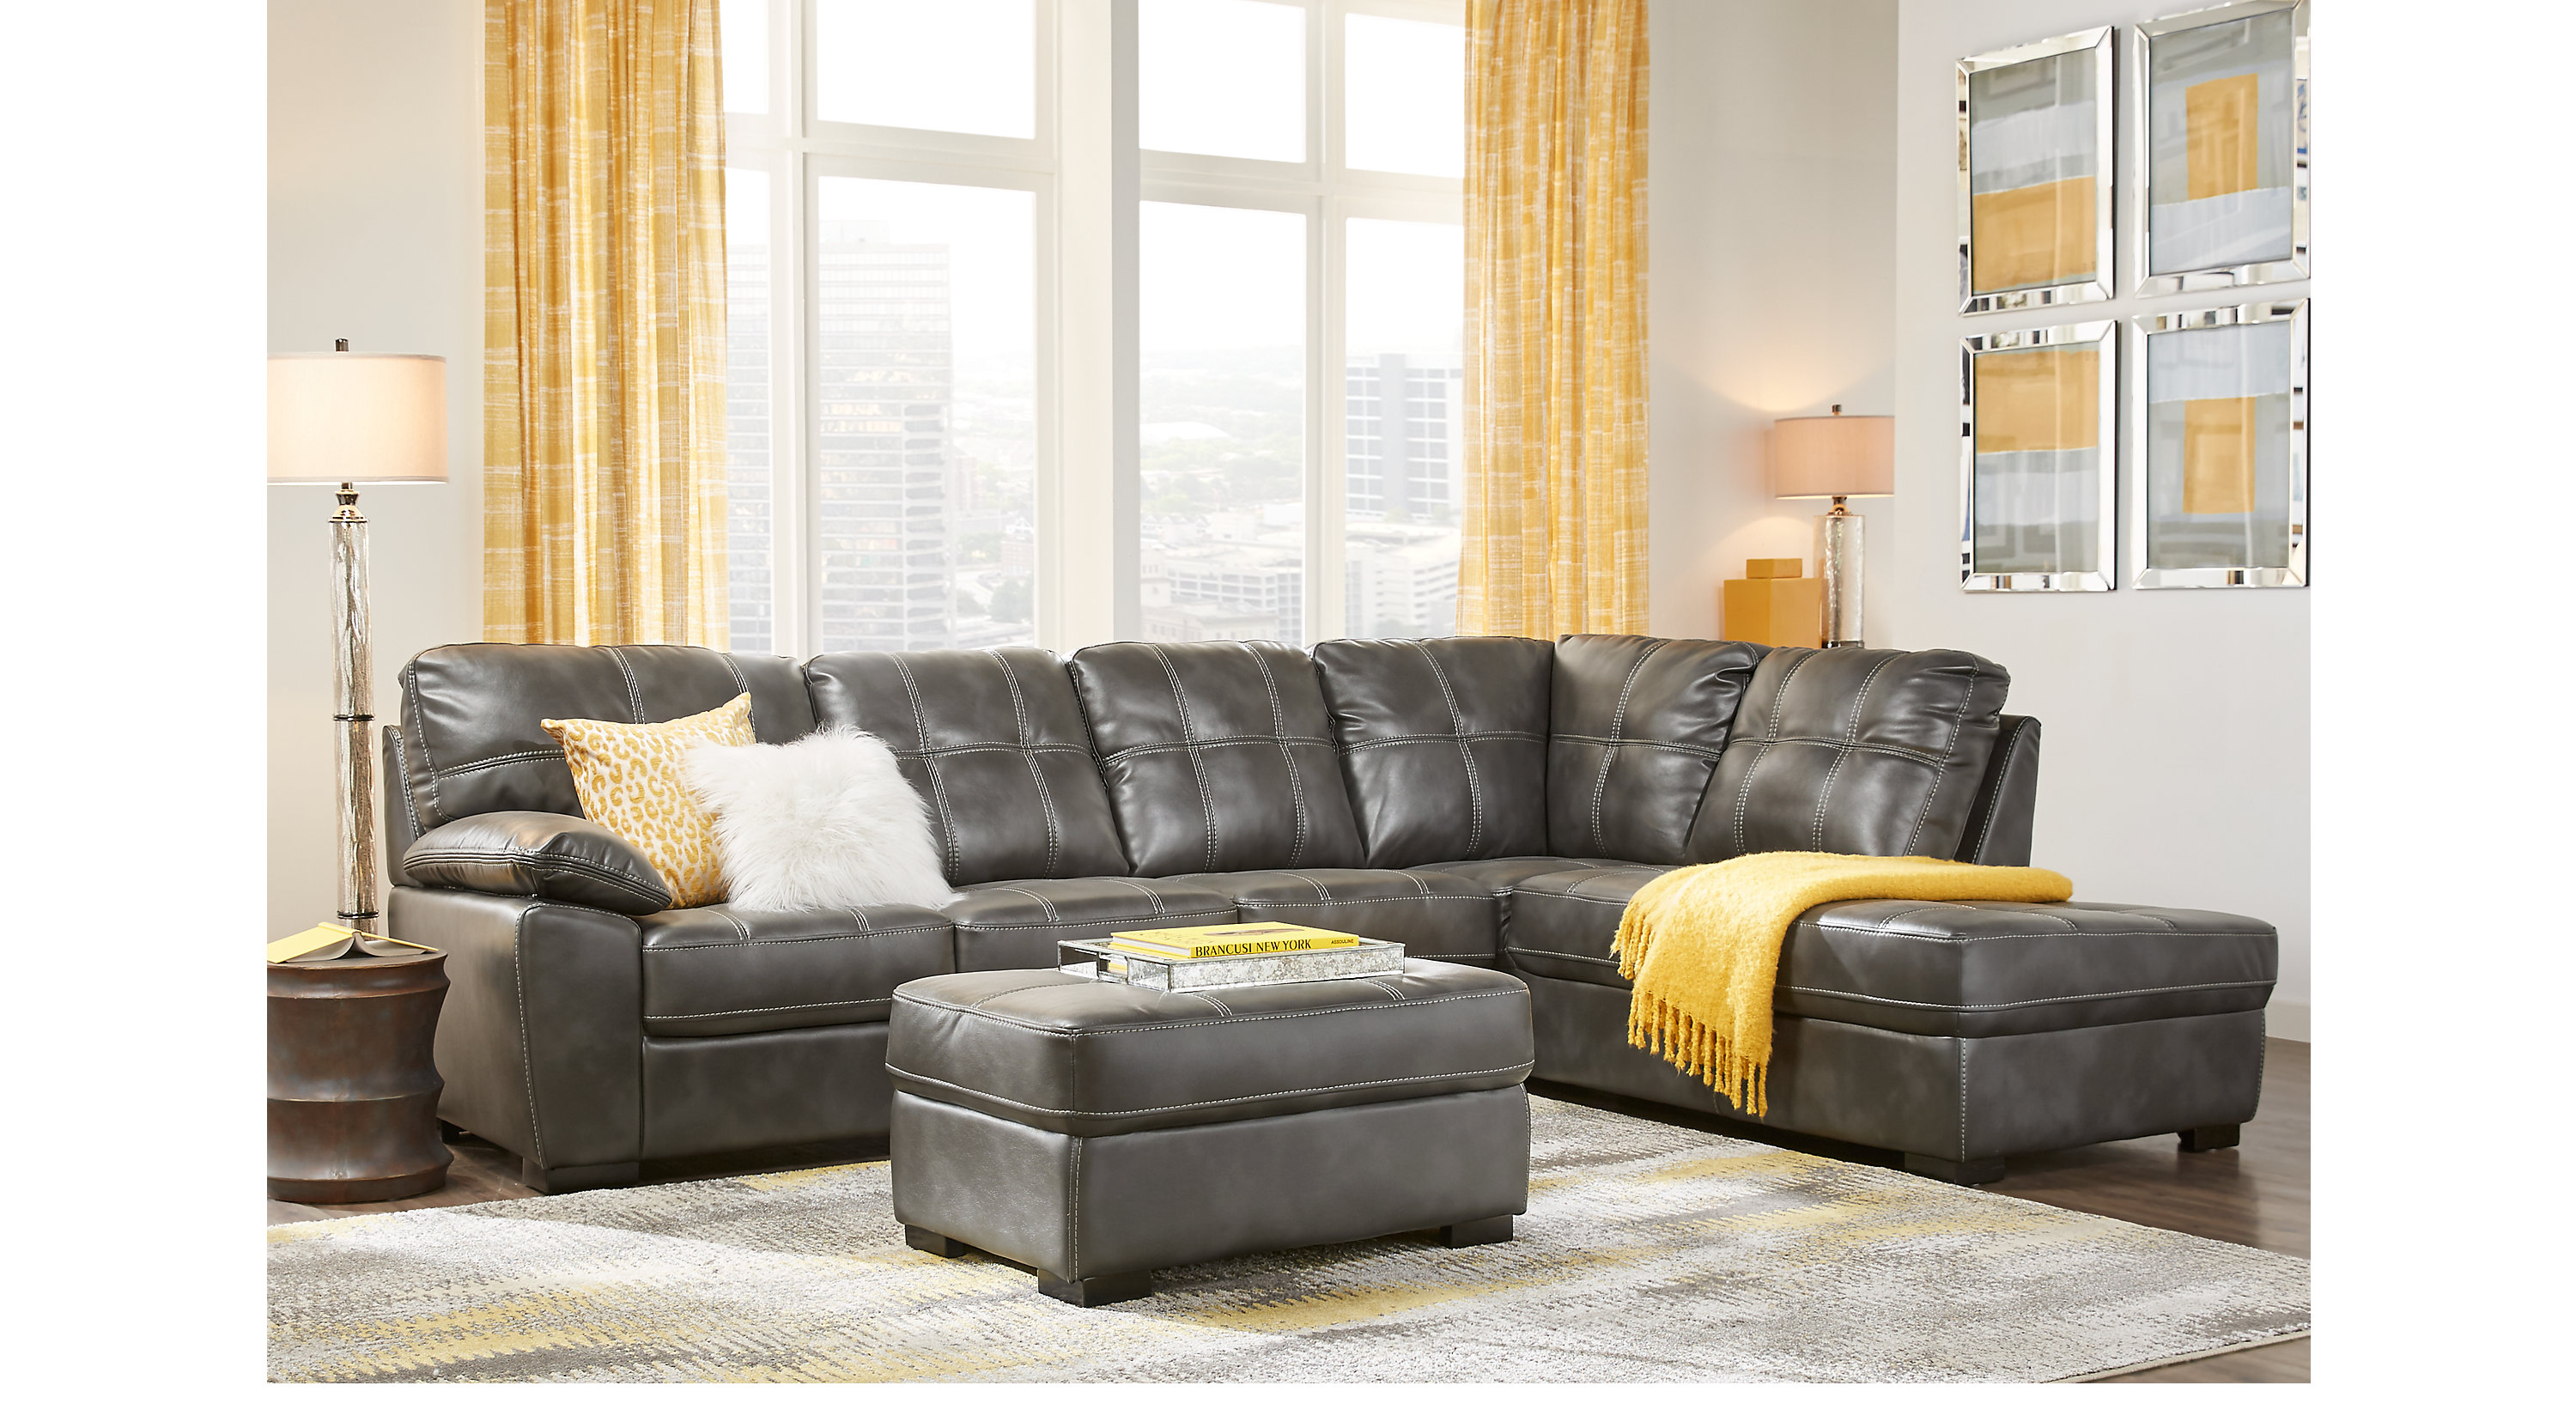 Bexley square slate 3 pc sectional living room sectional for Living sets for sale